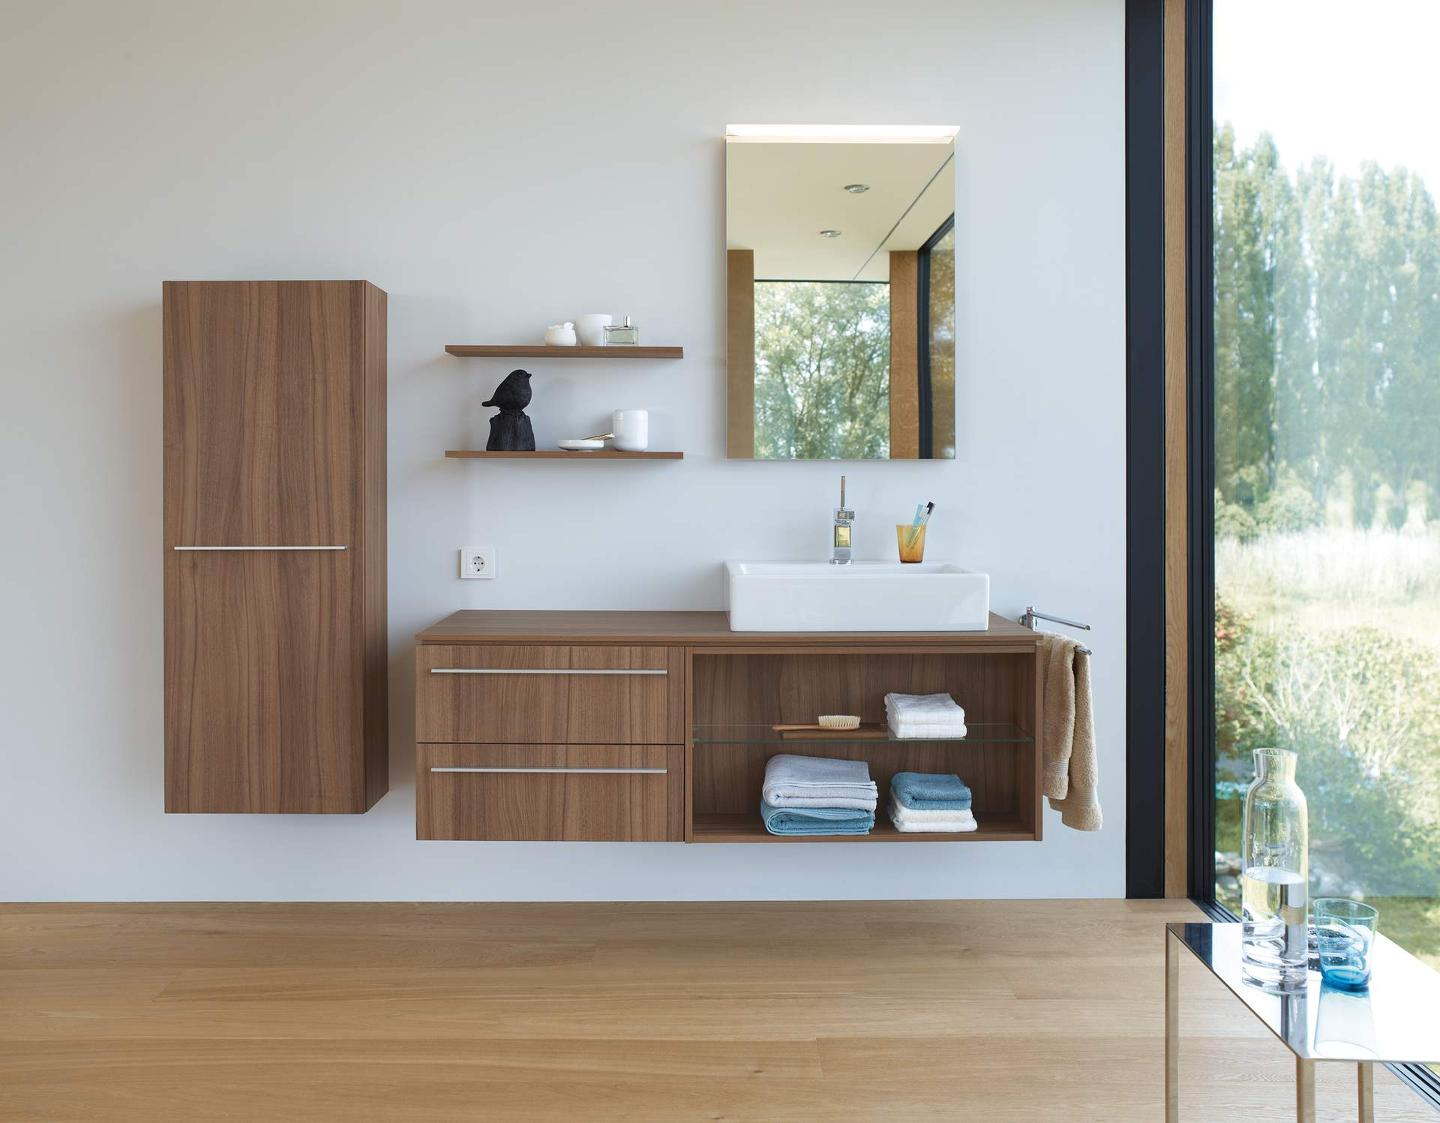 Bathroom furniture companies - Bathroom Furniture Companies 49